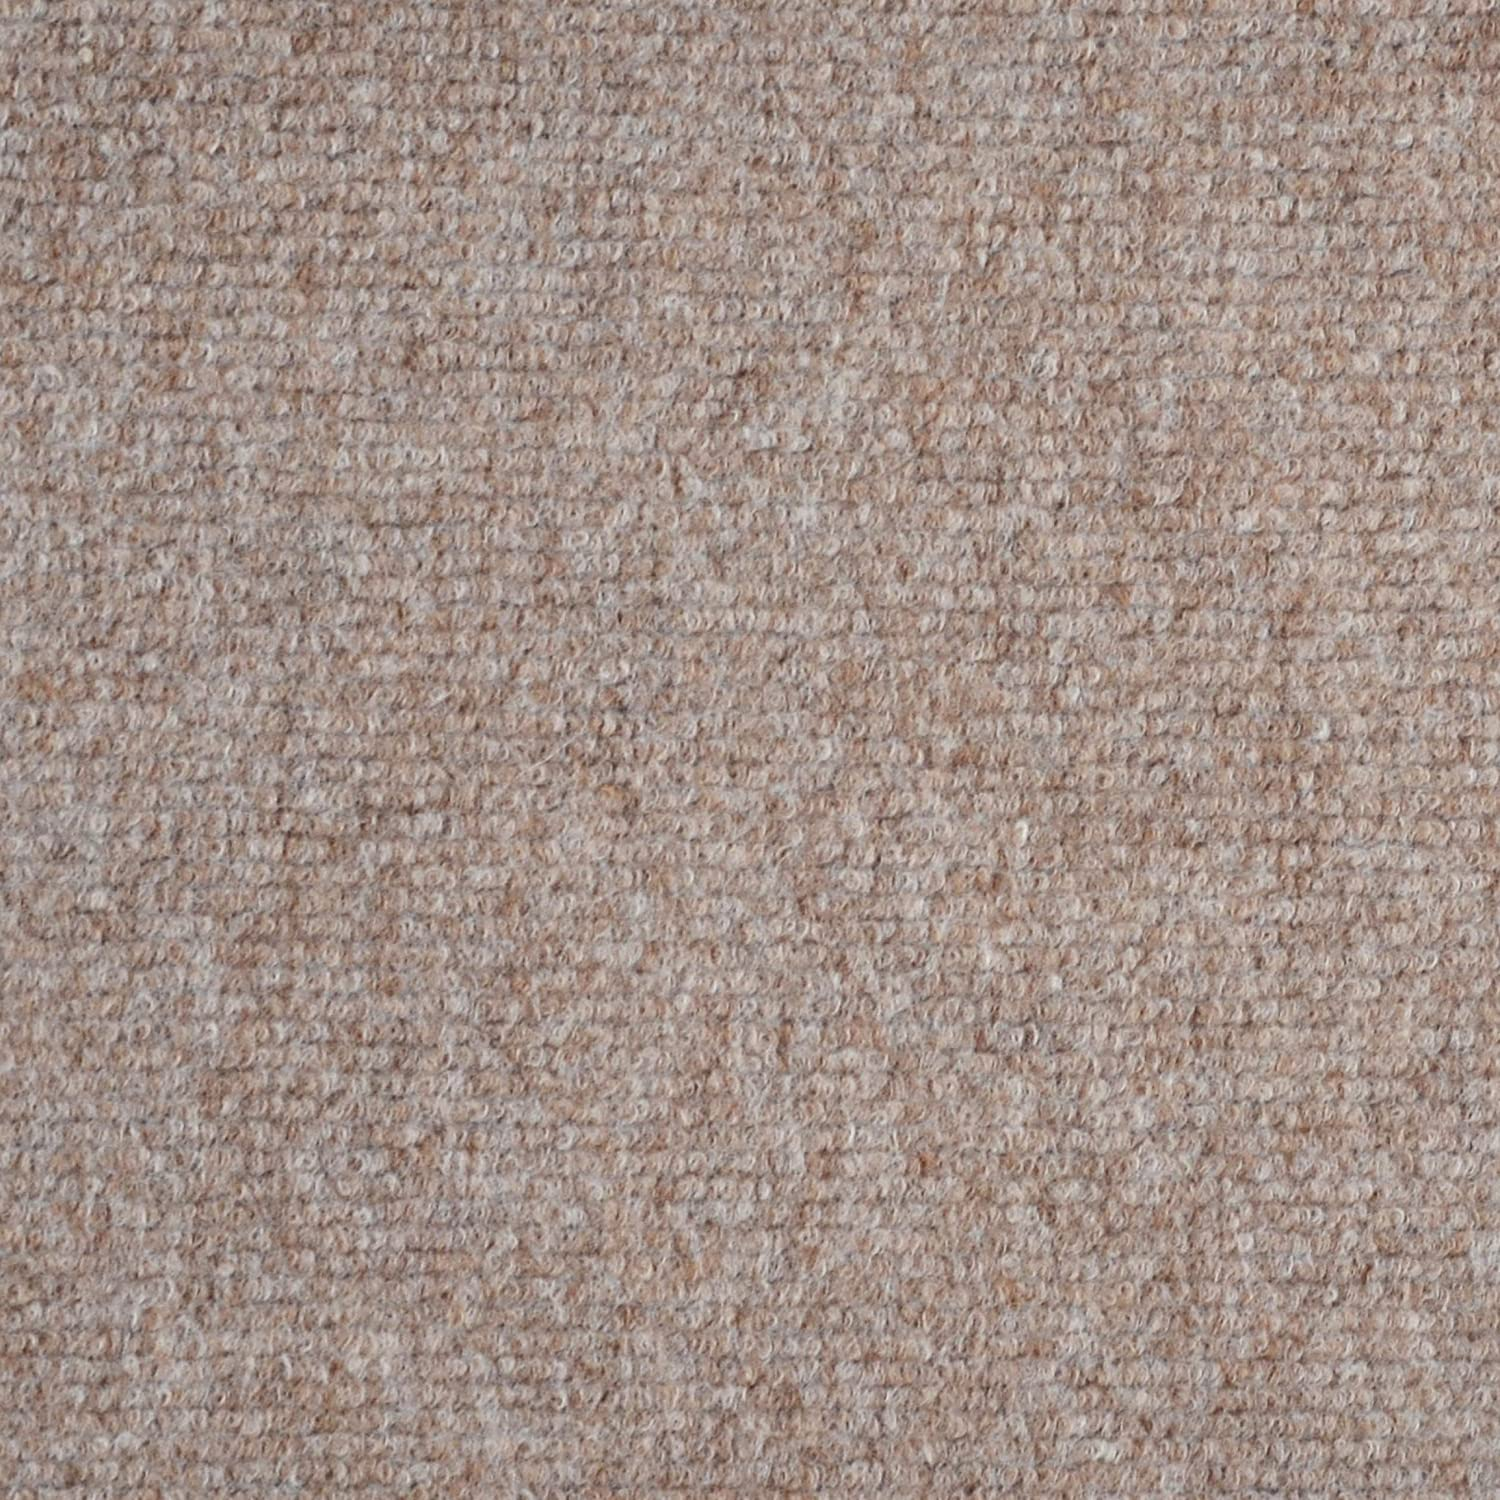 Amazon.com : Indoor/Outdoor Carpet/Rug - Beige - 6\' x 15\' with ...